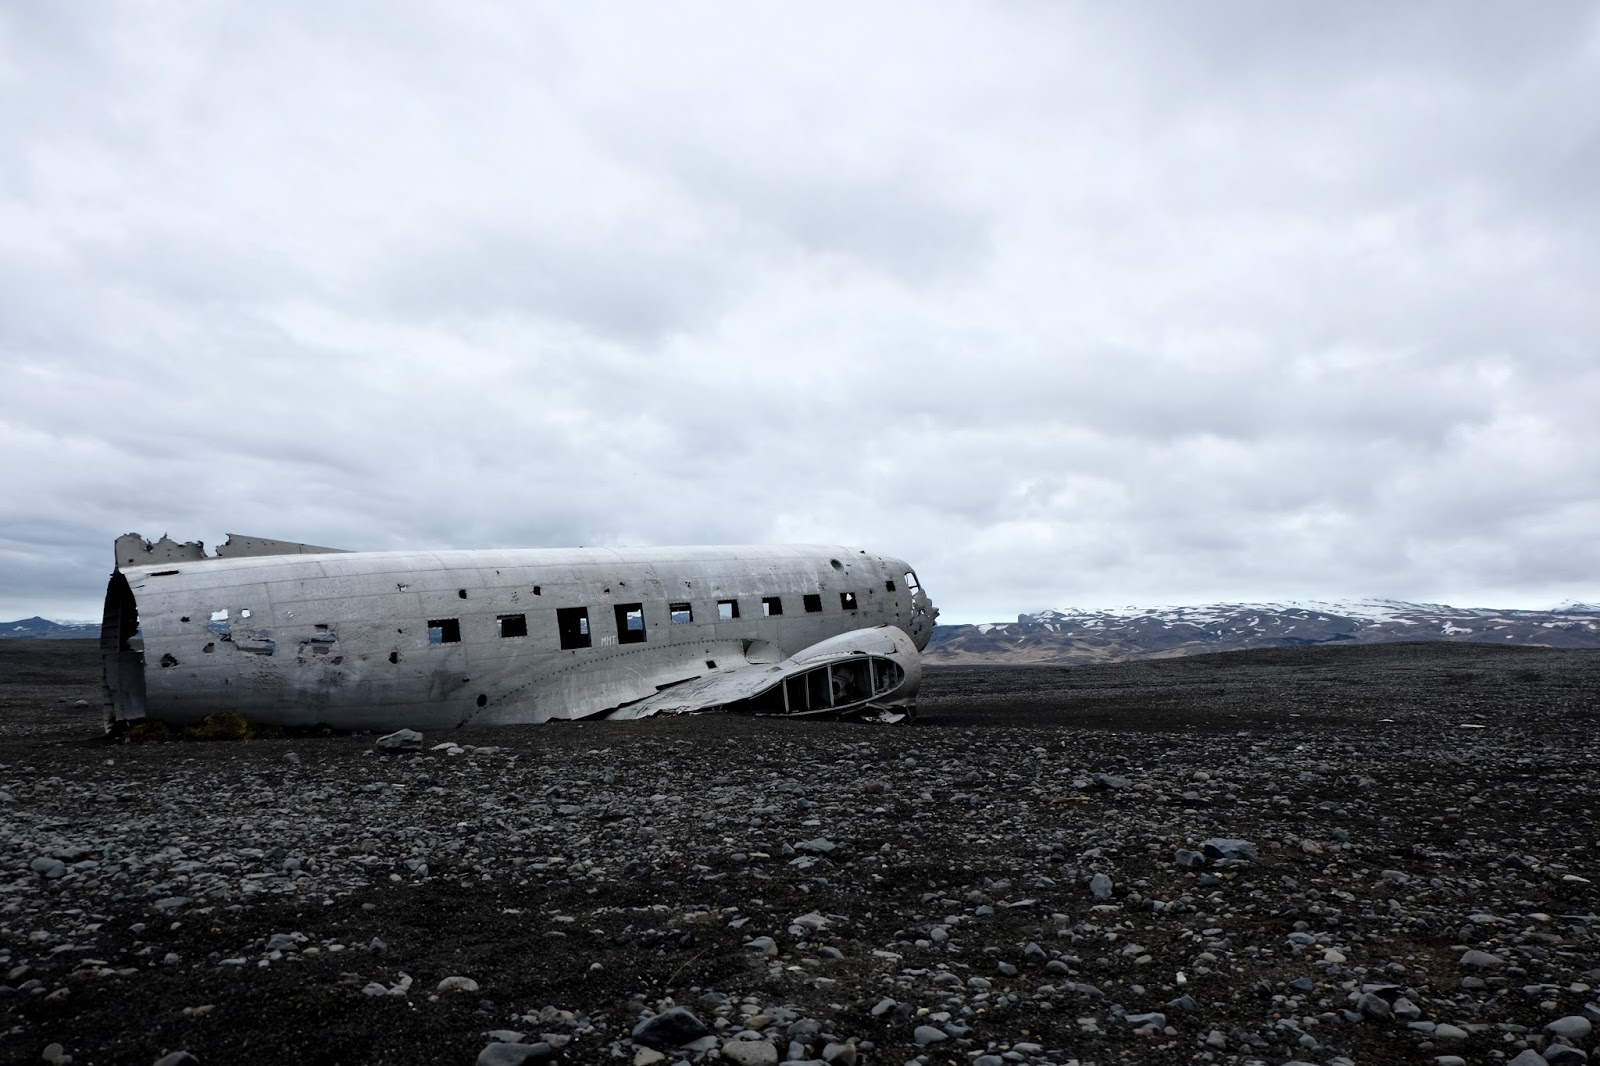 islande l 39 avion abandonn de s lheimasandur from there we were. Black Bedroom Furniture Sets. Home Design Ideas